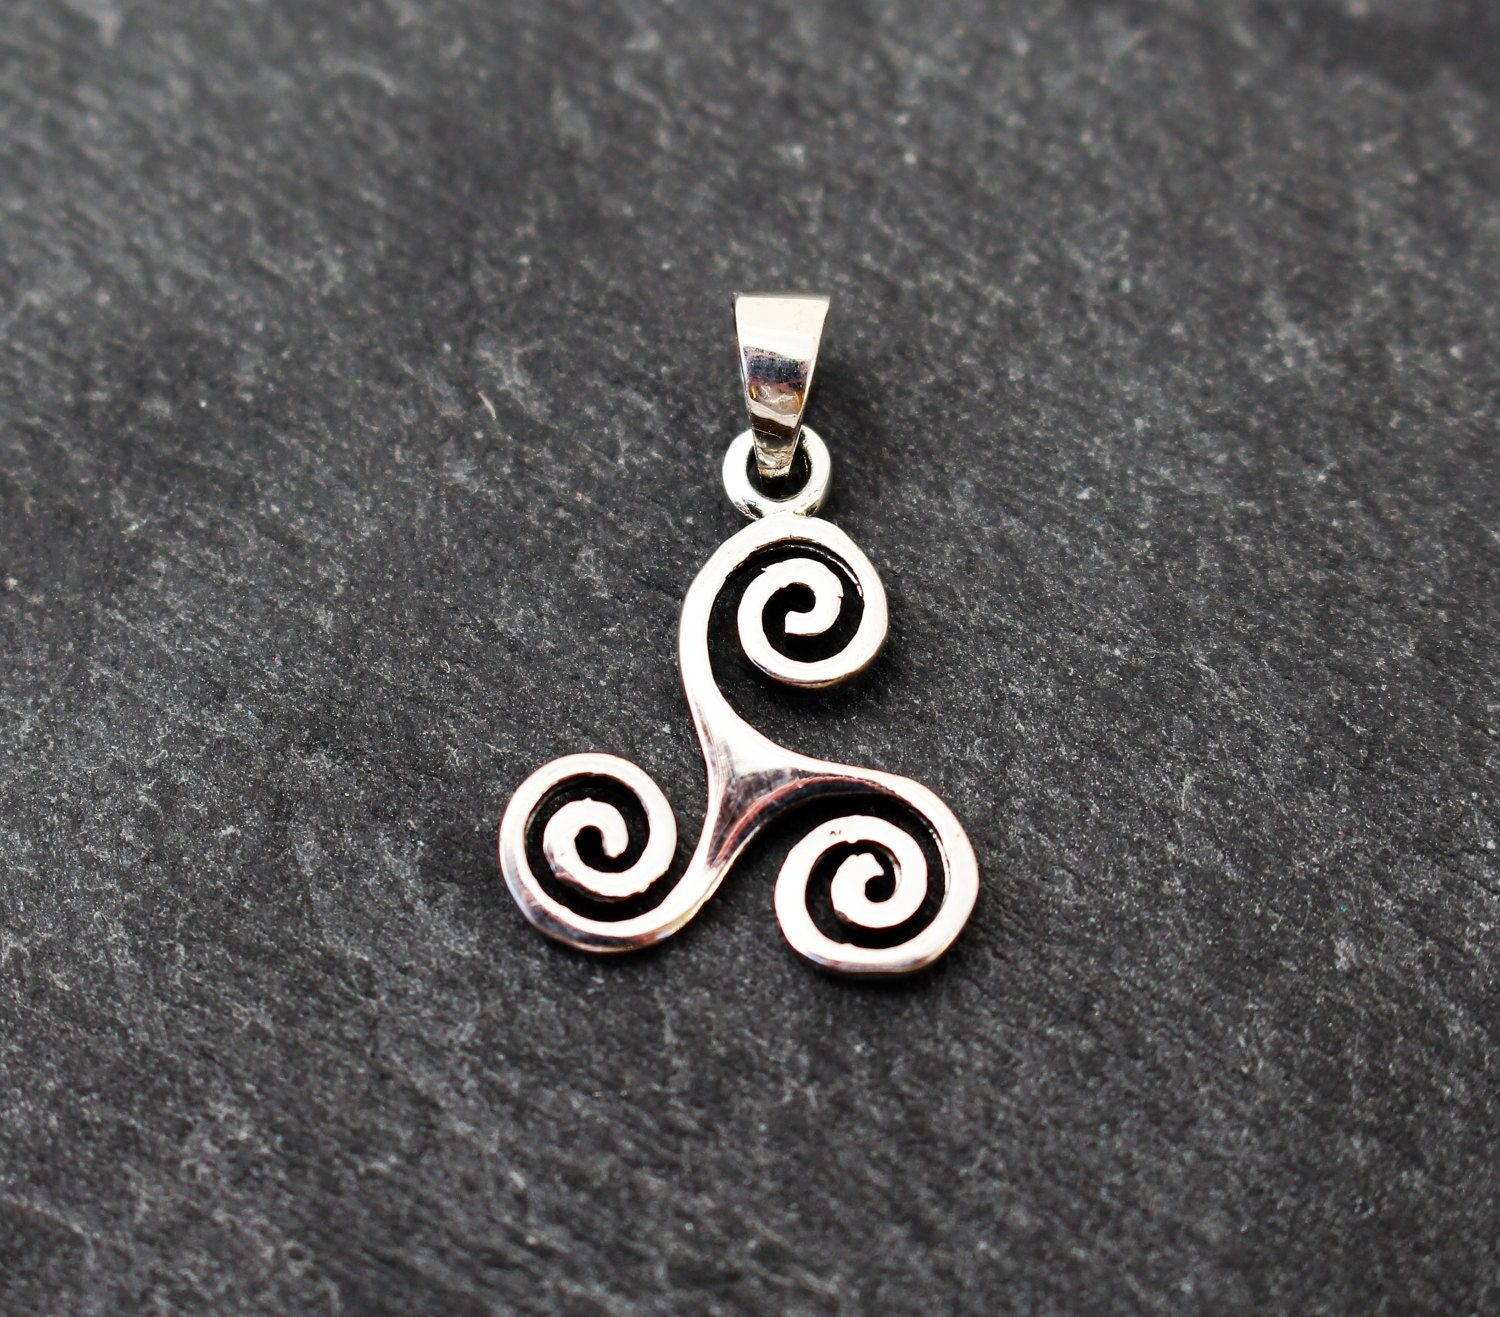 pagan triskele marble jewelry pin pendant triskelion connemara celtic irish spiral triple